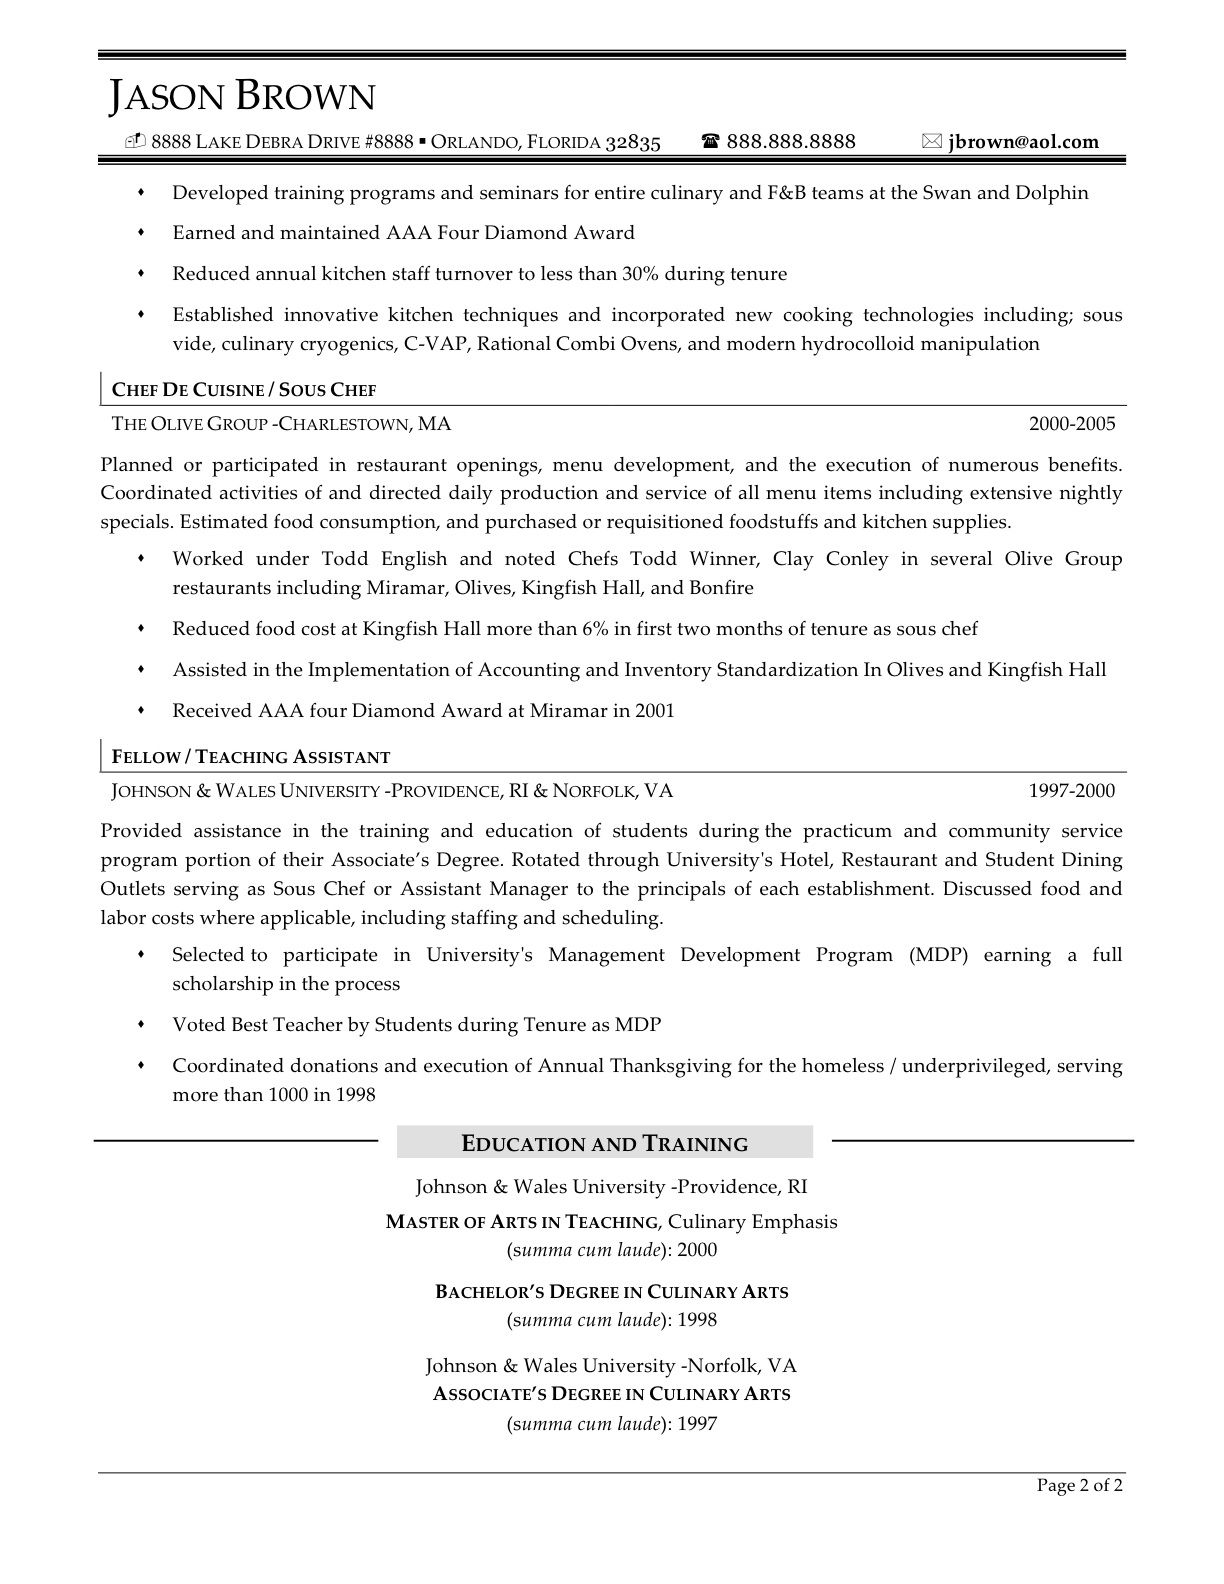 Sample Resume Summary Statement Chef Cook Resume Examples  Httpwwwjobresumewebsitechefcook